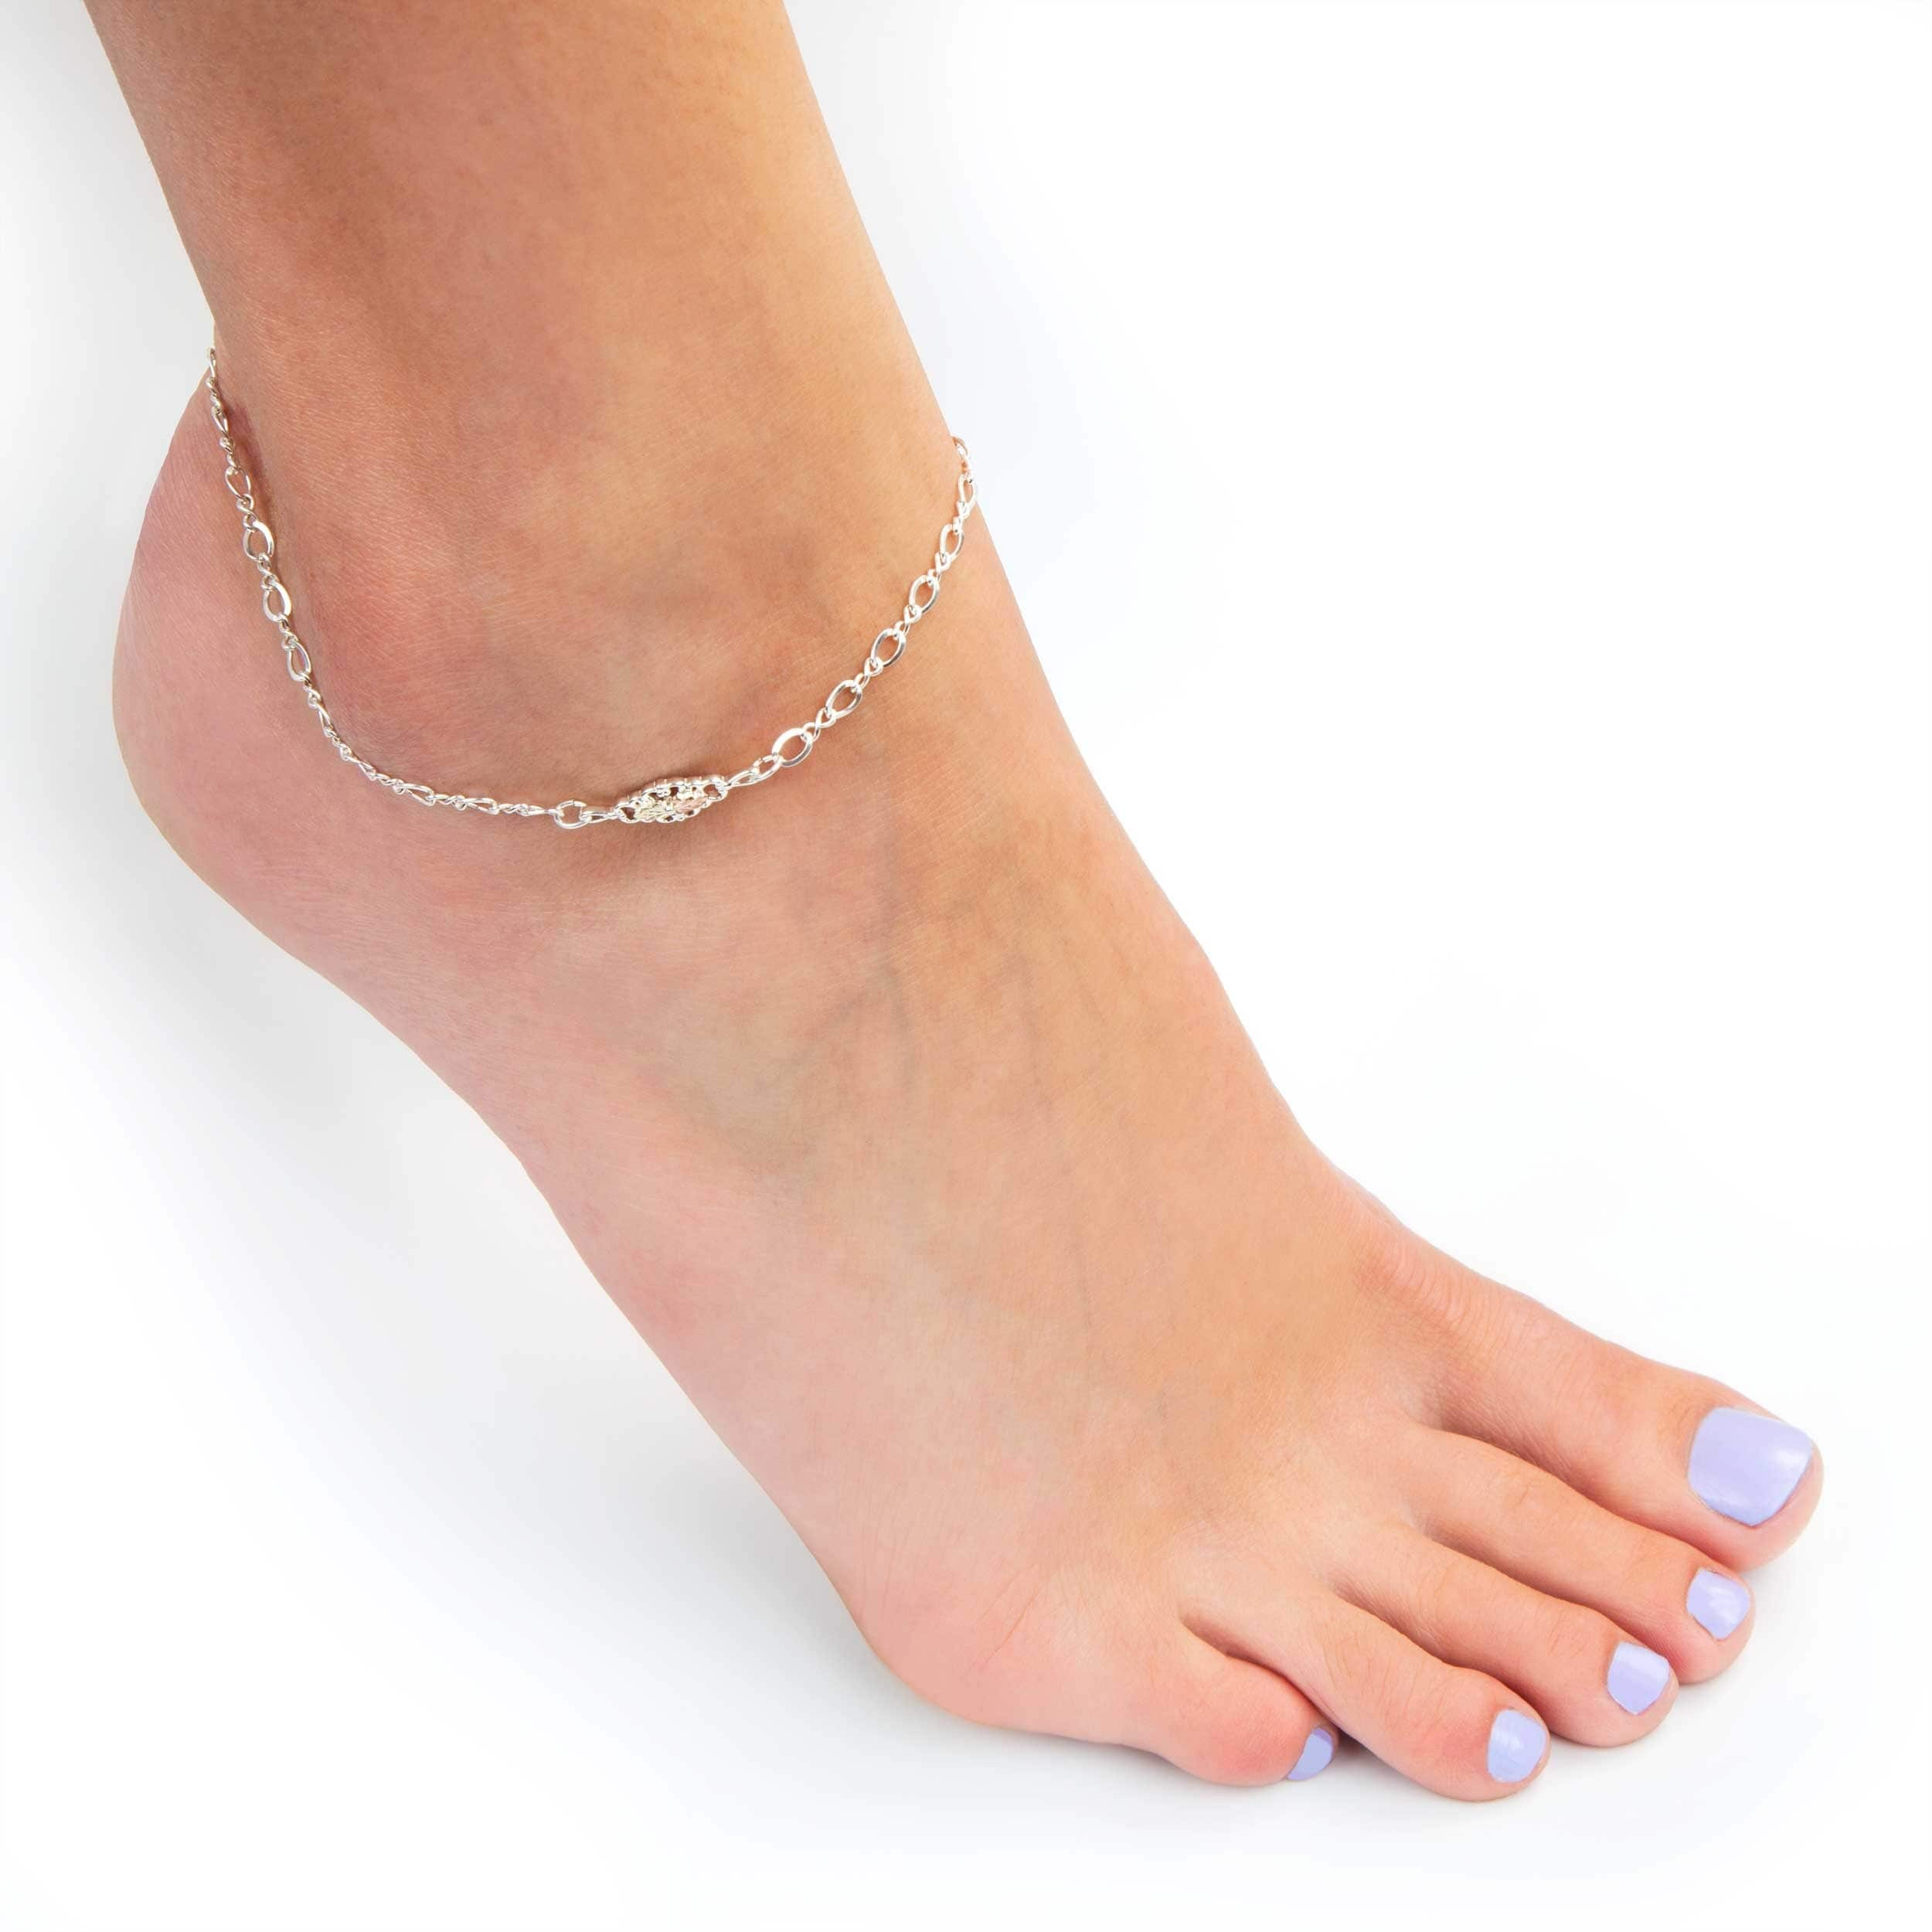 bracelets jewelry silver az dangling snowflake appl anklet bracelet real ja ankle adjustable bling